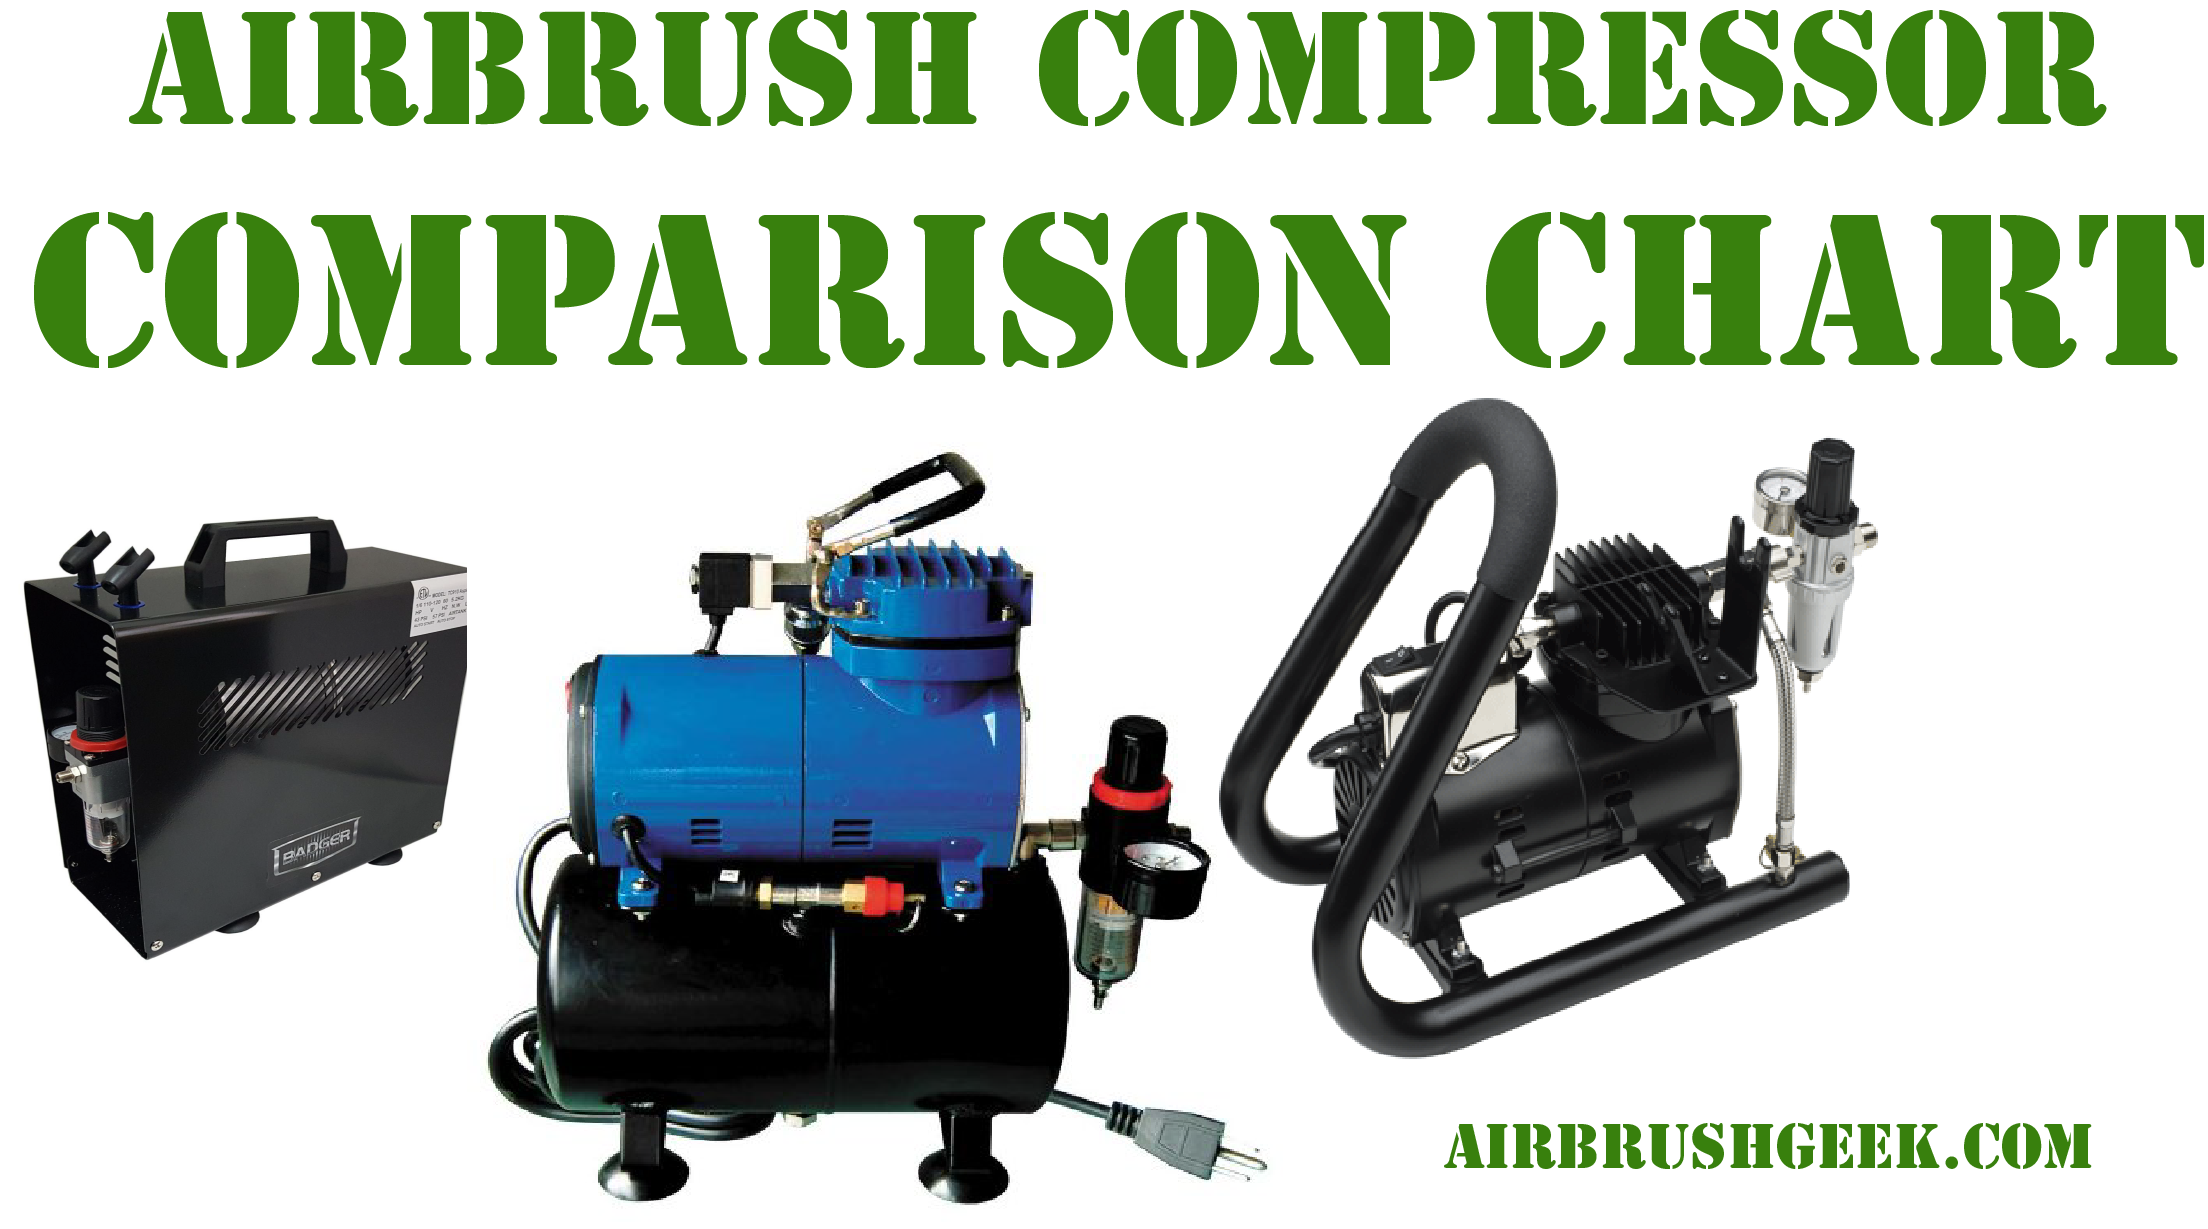 Airbrush Compressors Comparison Chart Airbrushgeek Ac Compressor Diagram Pro